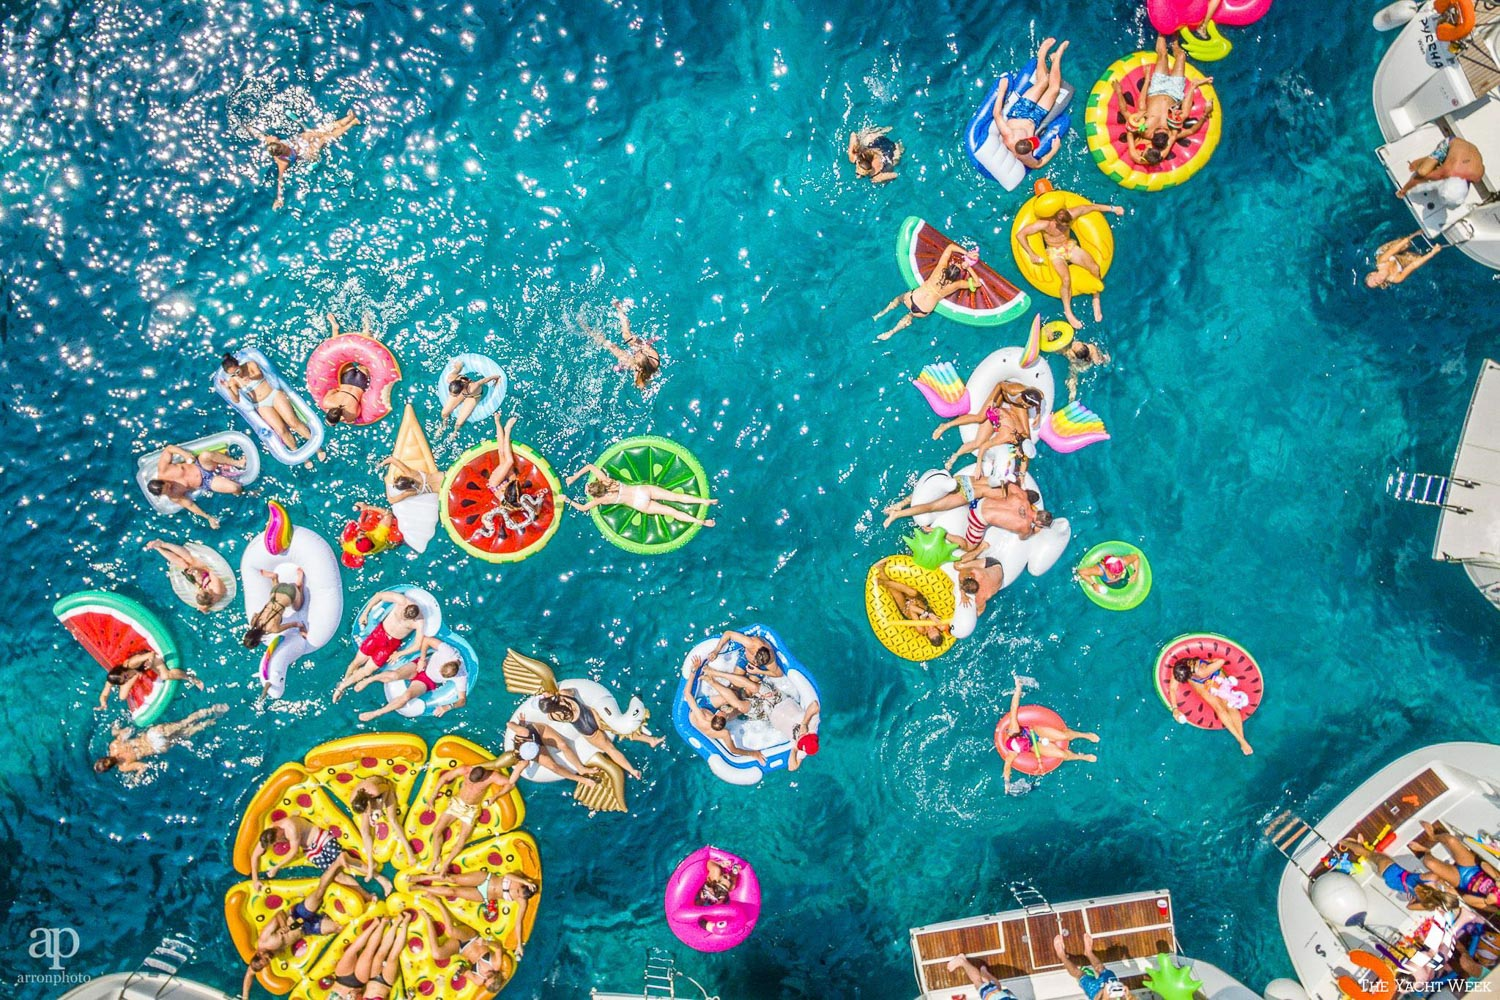 A fruit salad of floaties at The Yacht Week. Photo by @arronphoto